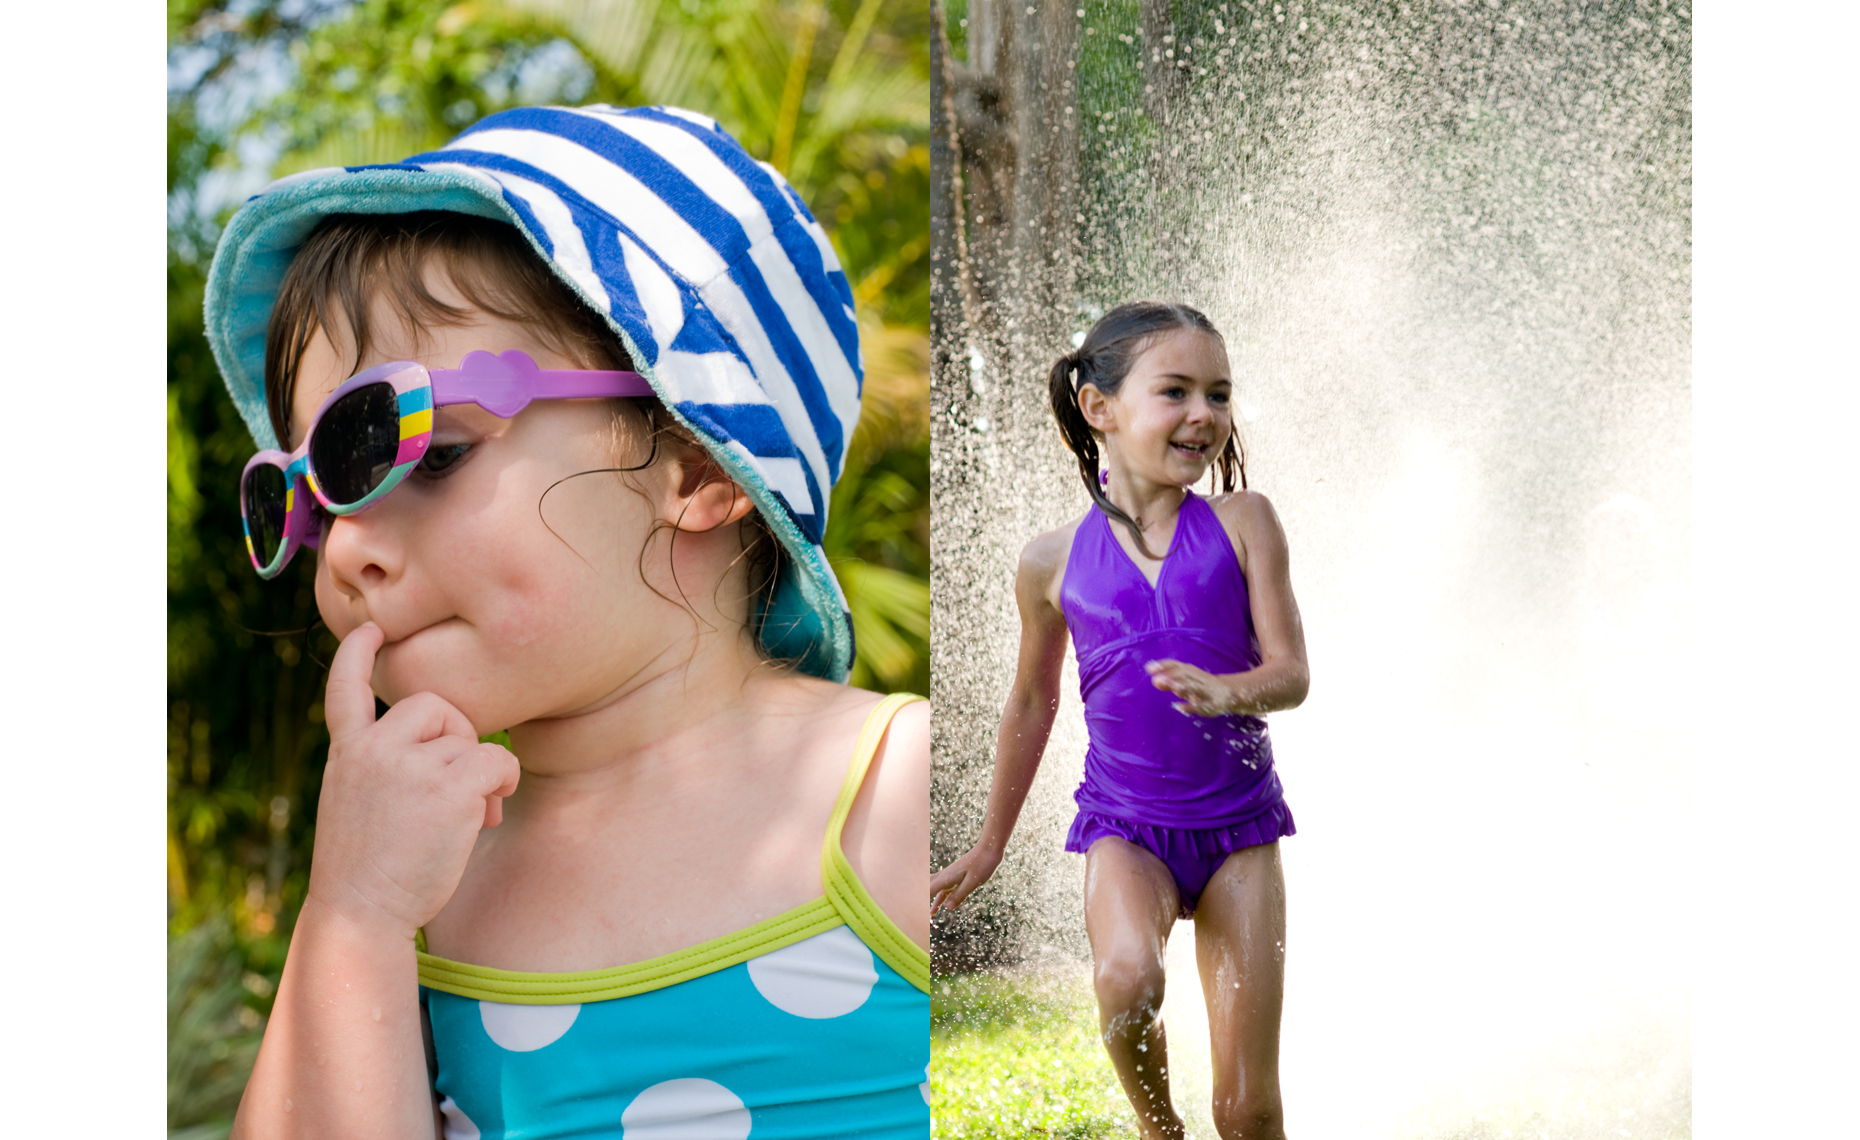 girl in hat sunglasses and bathing suit and girl in purple bathing suit runningin sprinkler